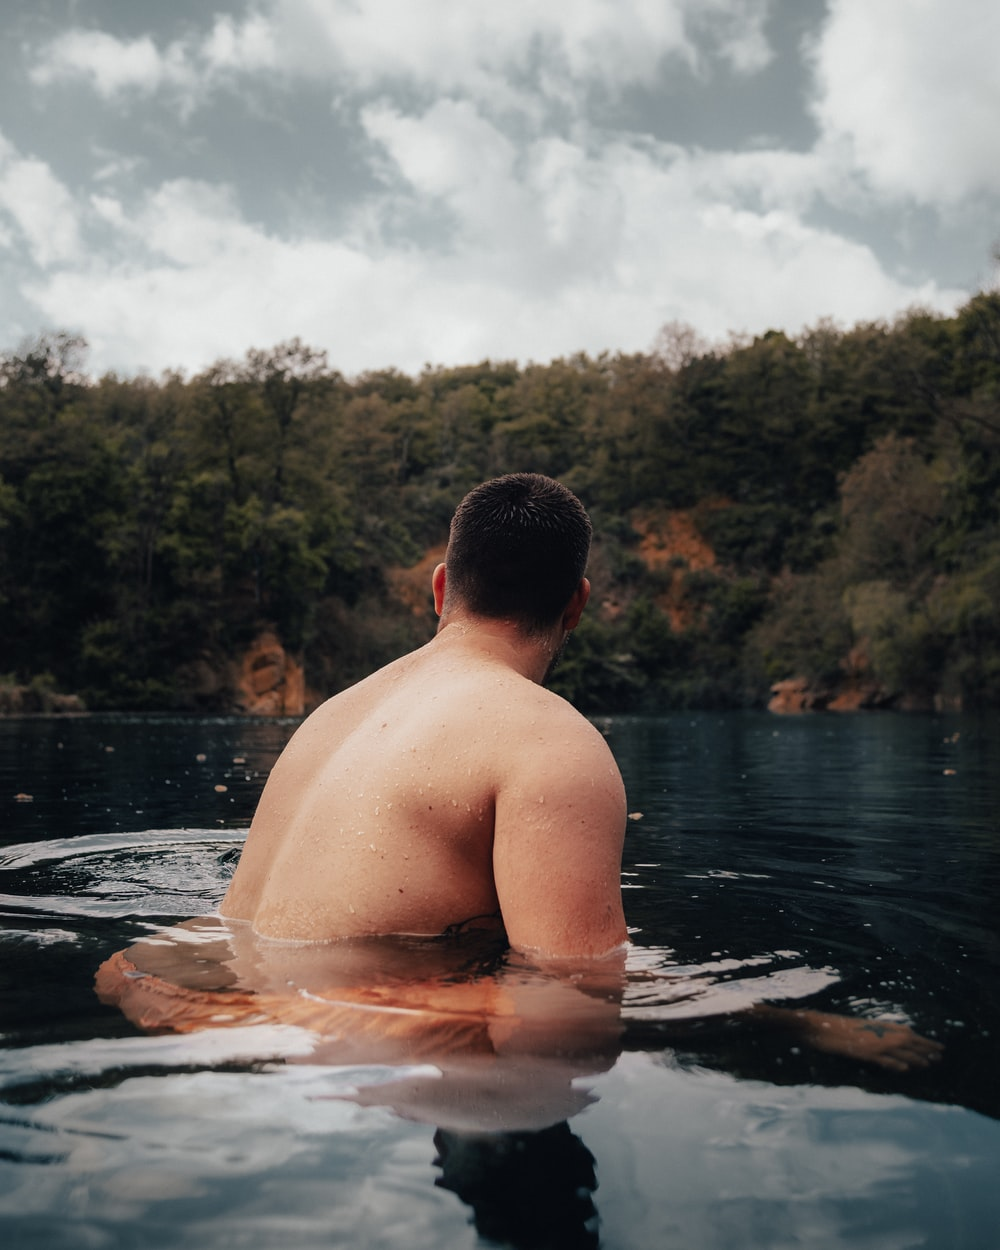 topless man in water near green trees during daytime